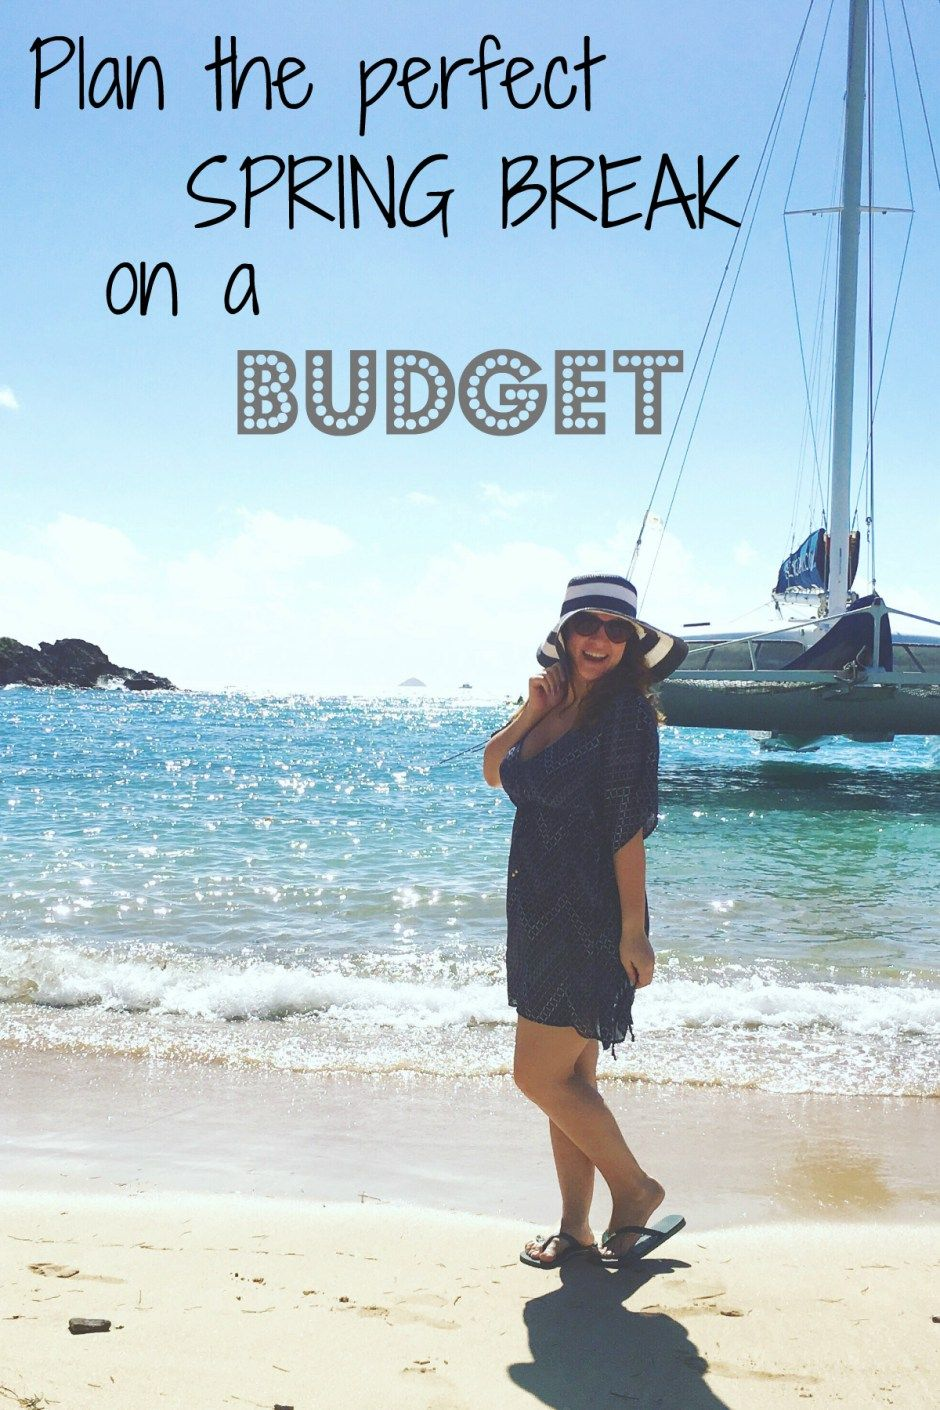 need to plan spring break on a budget? i have some tips for you